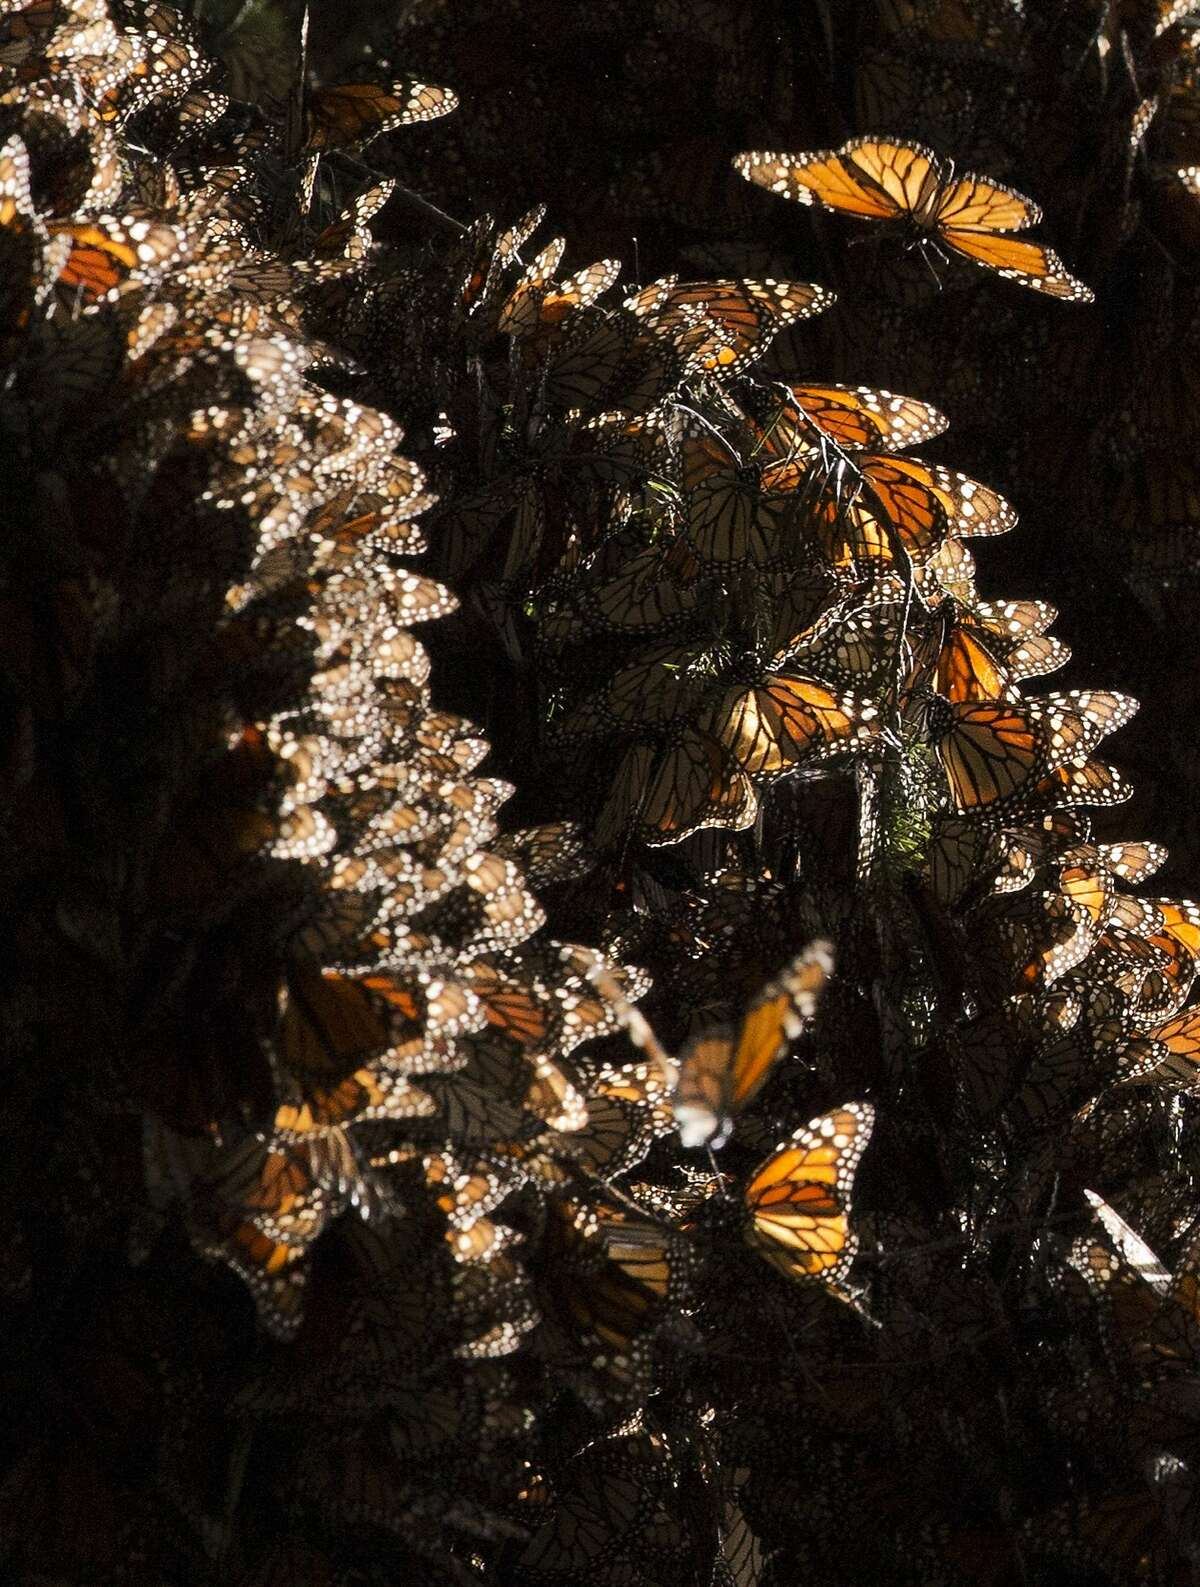 In this Jan. 4, 2015 photo, a kaleidoscope Monarch butterflies cling to tree branches, in the Piedra Herrada sanctuary, near Valle de Bravo, Mexico. More butterflies appear to have made the long flight from the U.S. and Canada to their winter nesting ground in western Mexico, raising hopes after their number dropped to a record low last year. But experts still fear that unusual cold temperatures will threaten the orange and black insects. (AP Photo/Rebecca Blackwell)